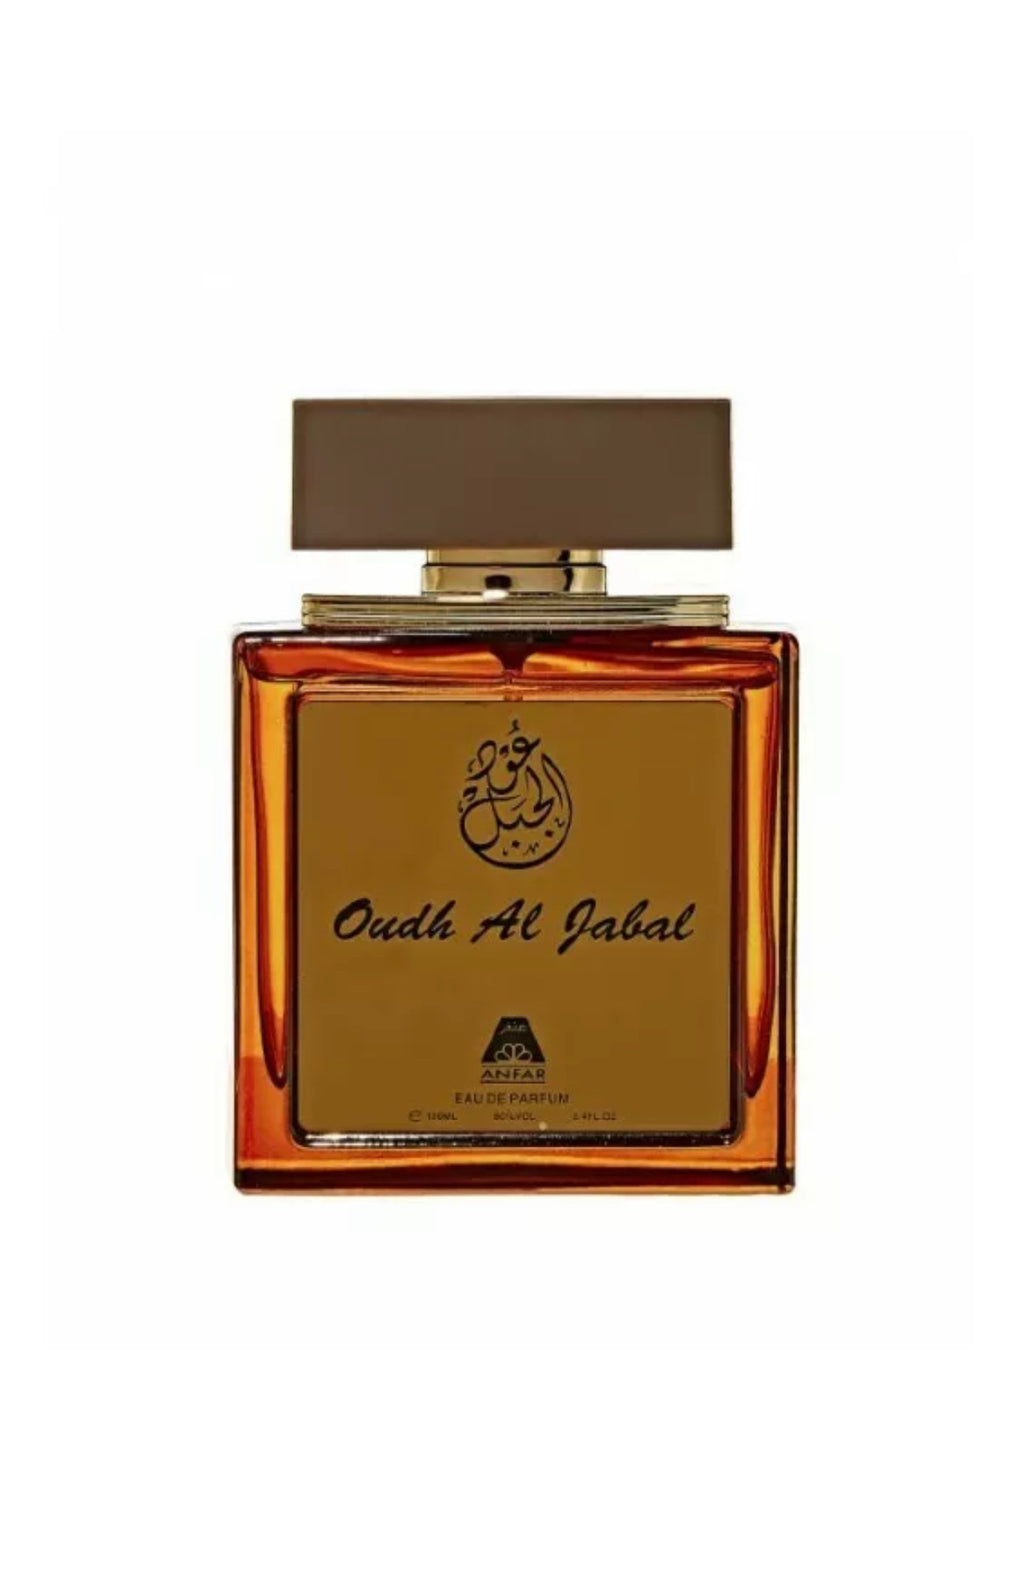 Oud Al Jabal by Anfar